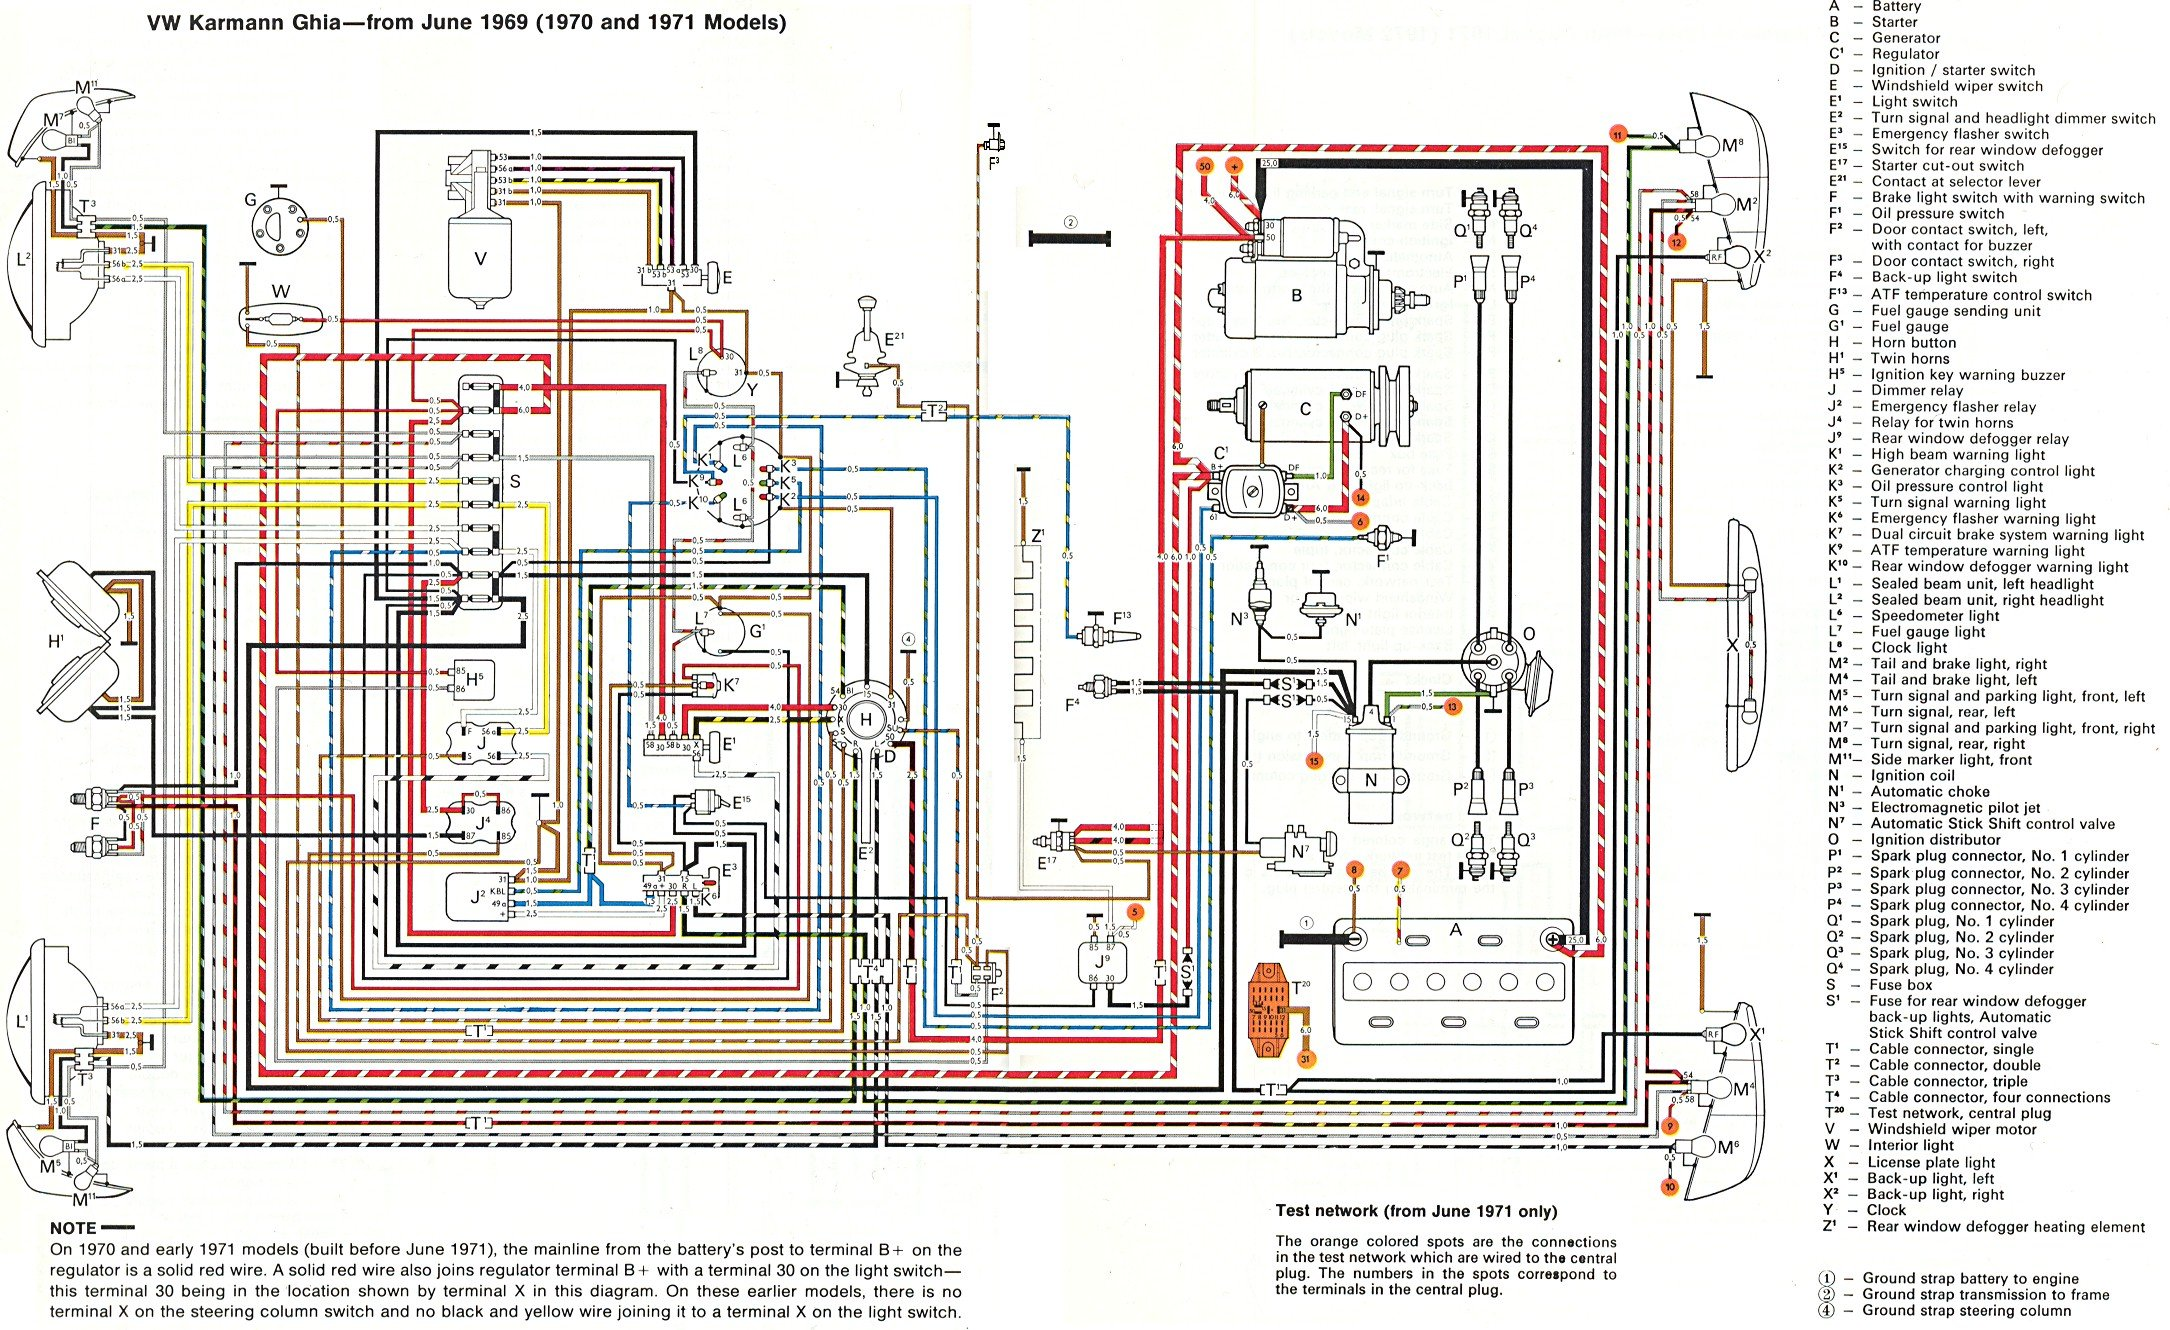 1970 Karmann Ghia Wiring Diagram Free Download Modern Design Of 68 Chevy C10 Harness Thesamba Com Diagrams Rh 70 Vw